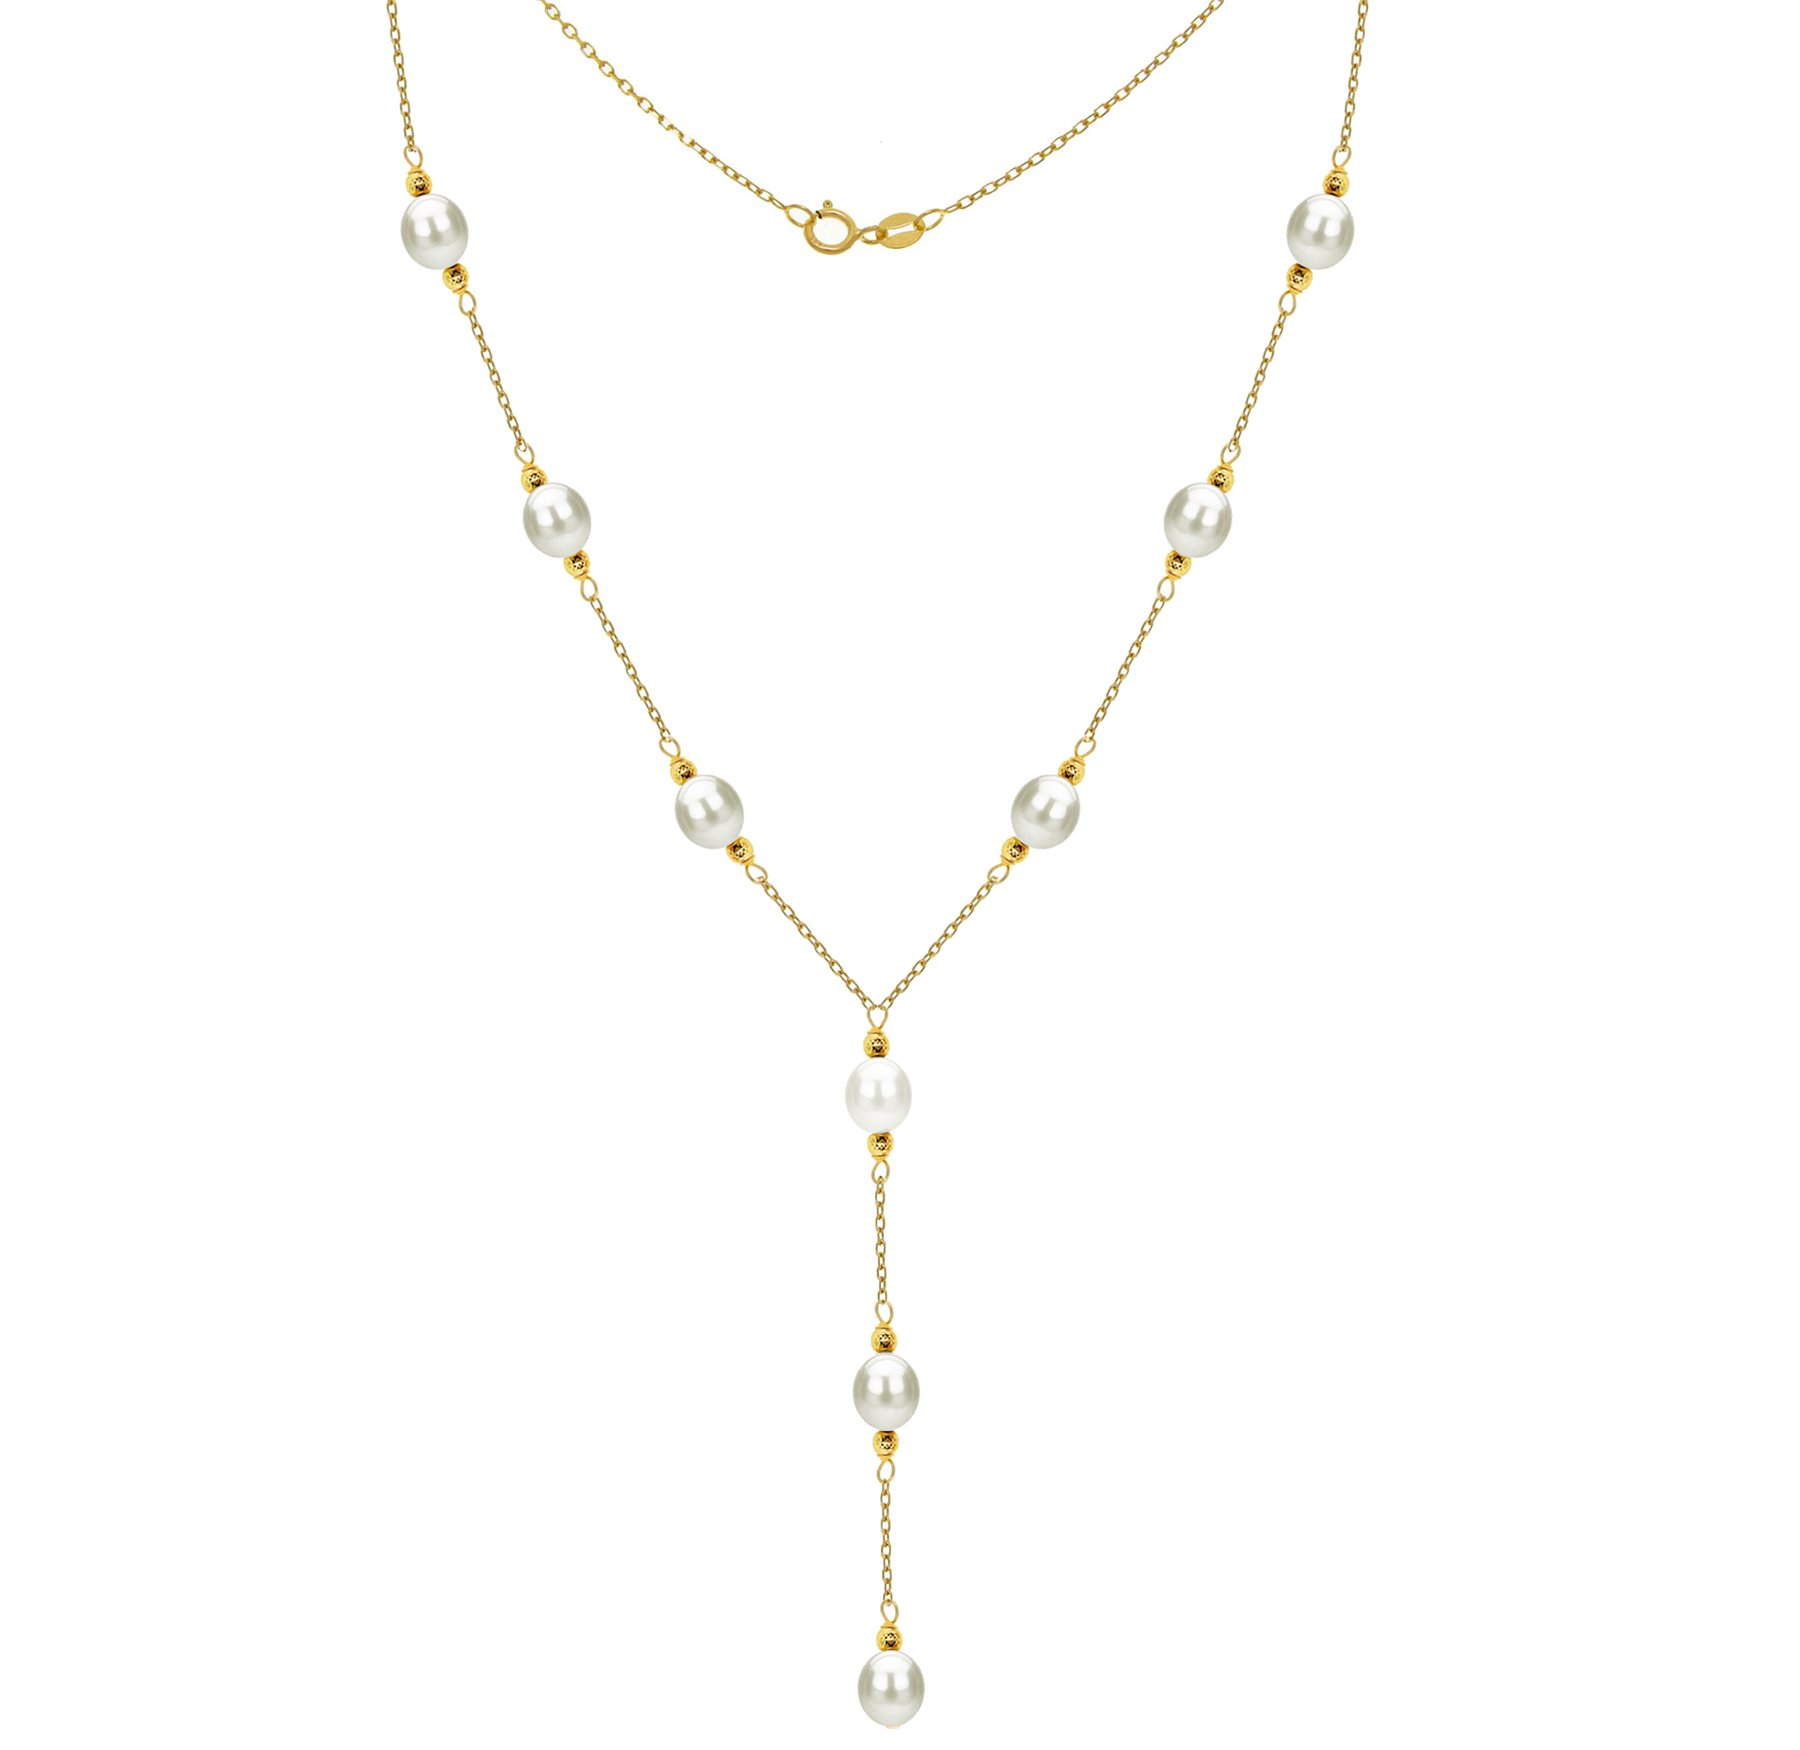 Lariat Tin Cup Station 14K Gold Chain Necklace Cultured freshwater White Pearl Jewelry for Women by La Regis Jewelry